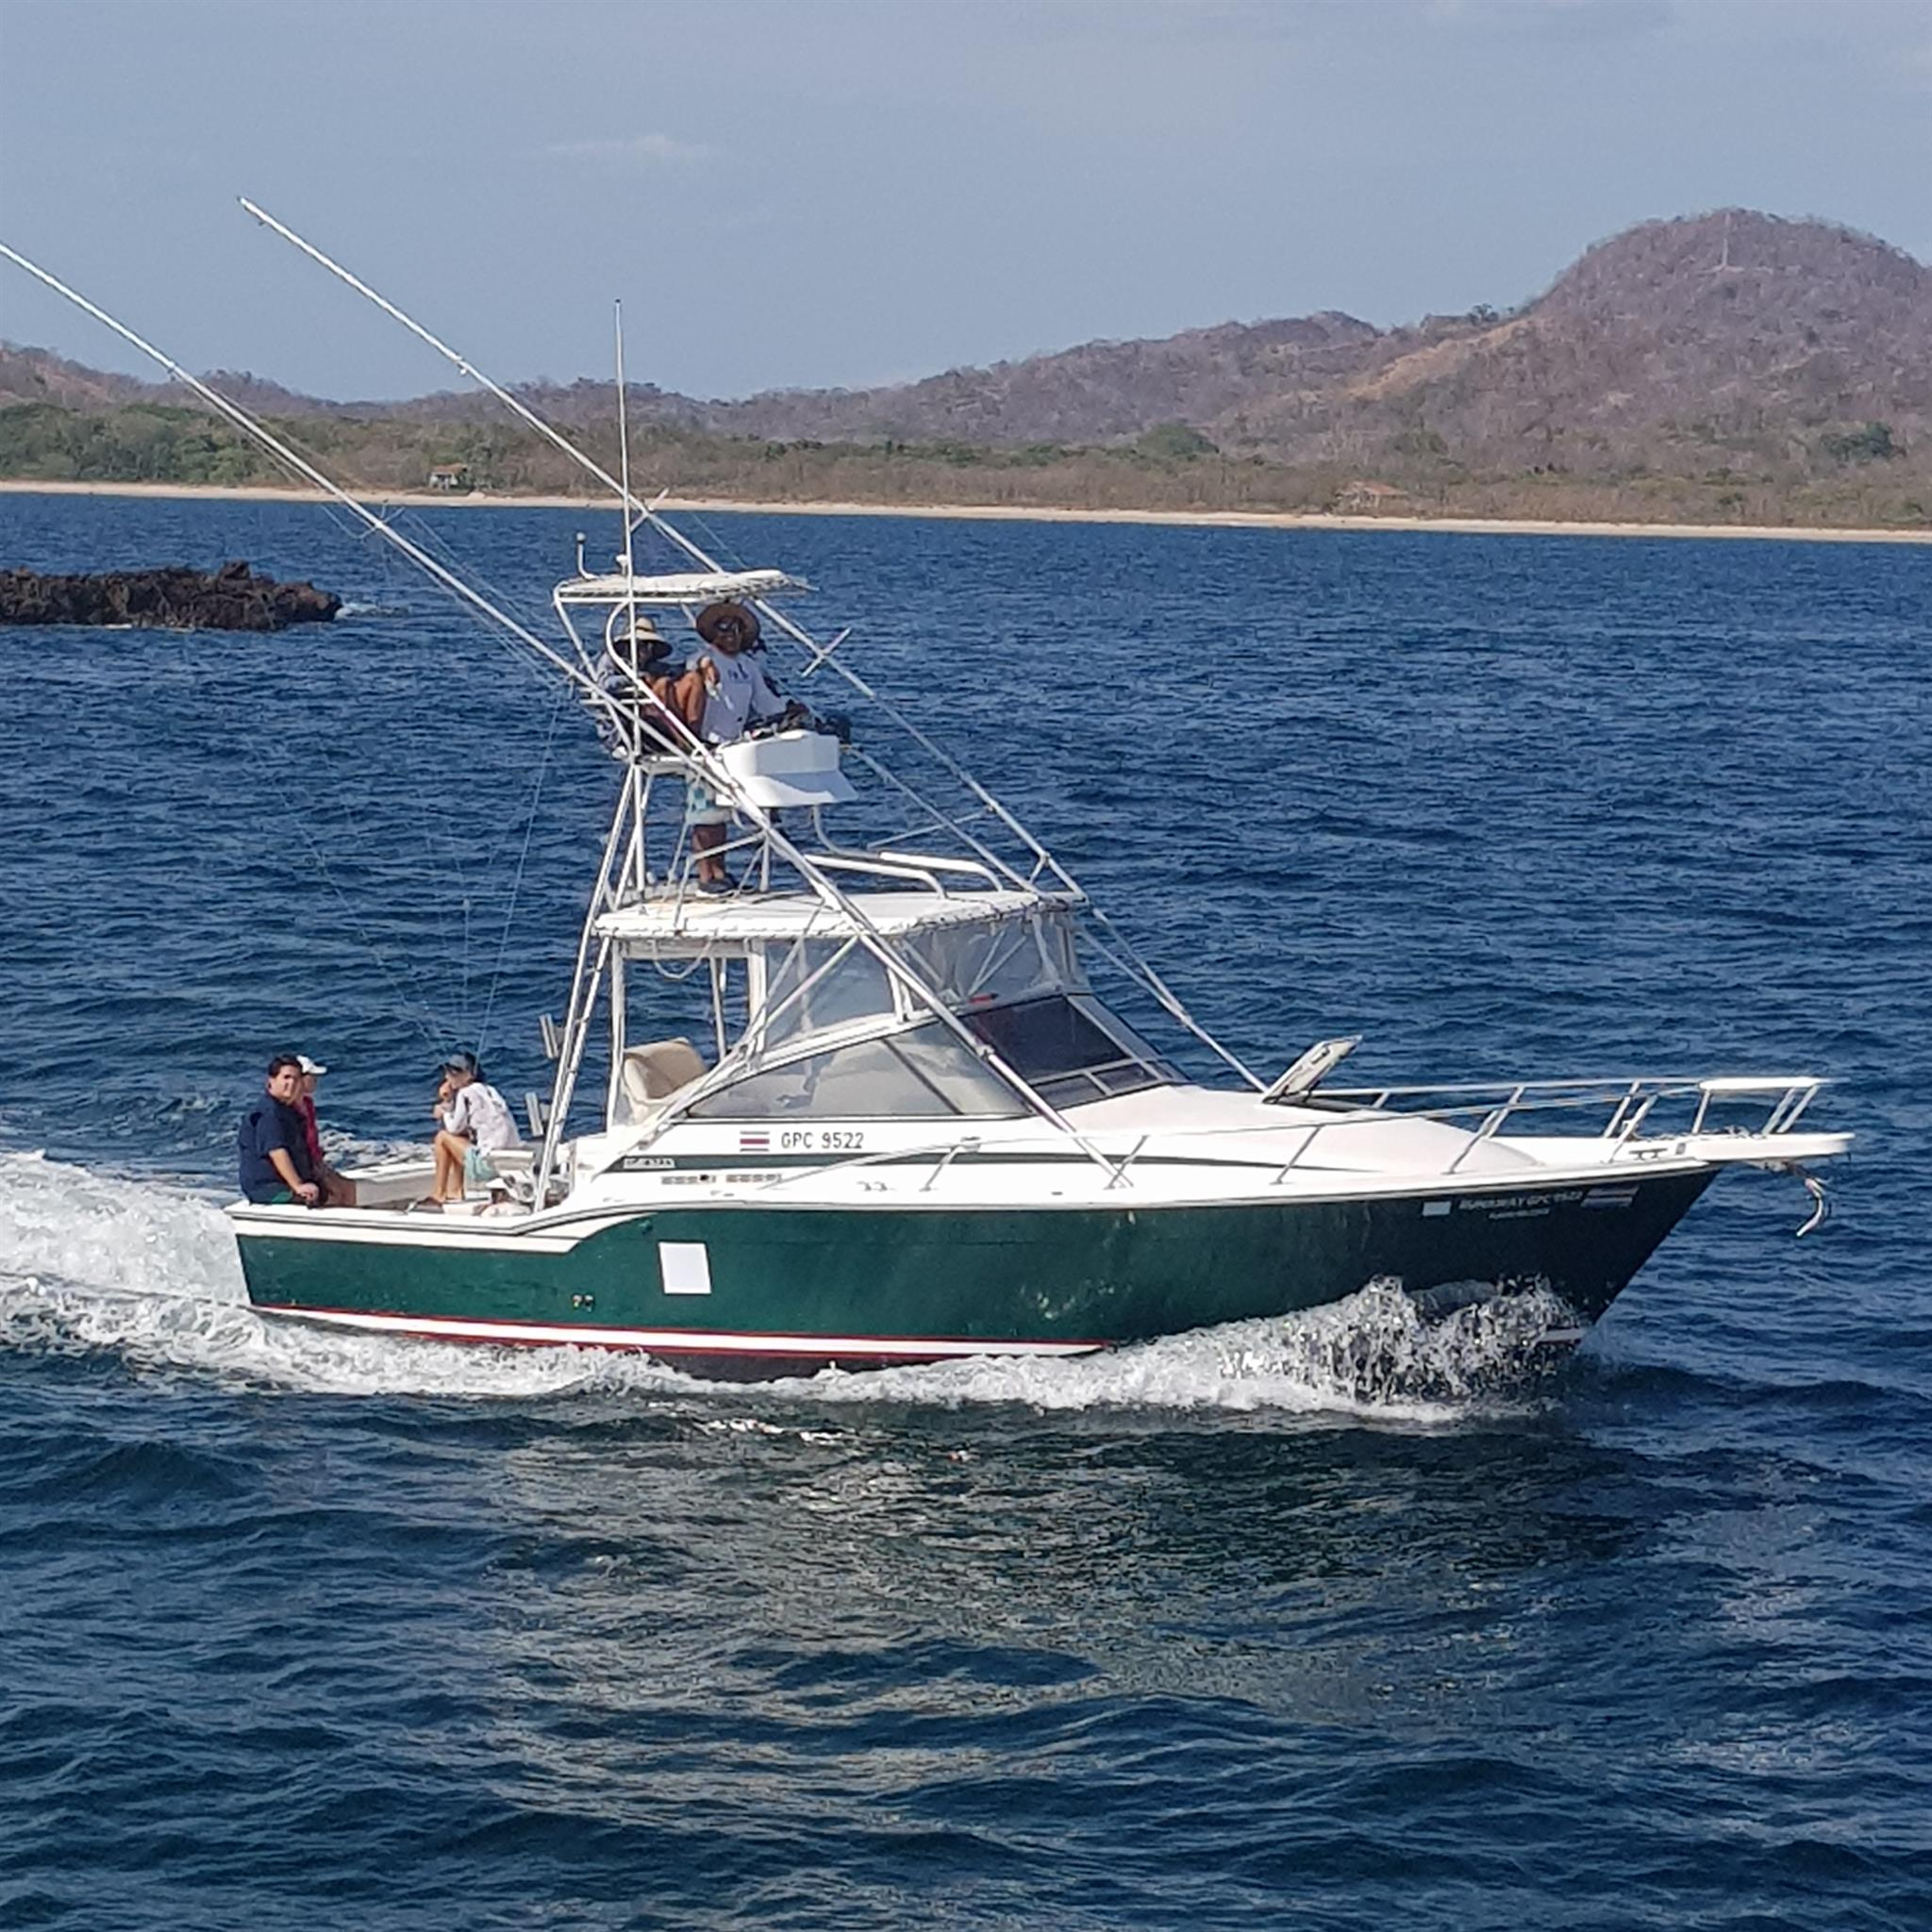 Costa rica fishing kingpin sportfishing in tamarindo for Tamarindo costa rica fishing